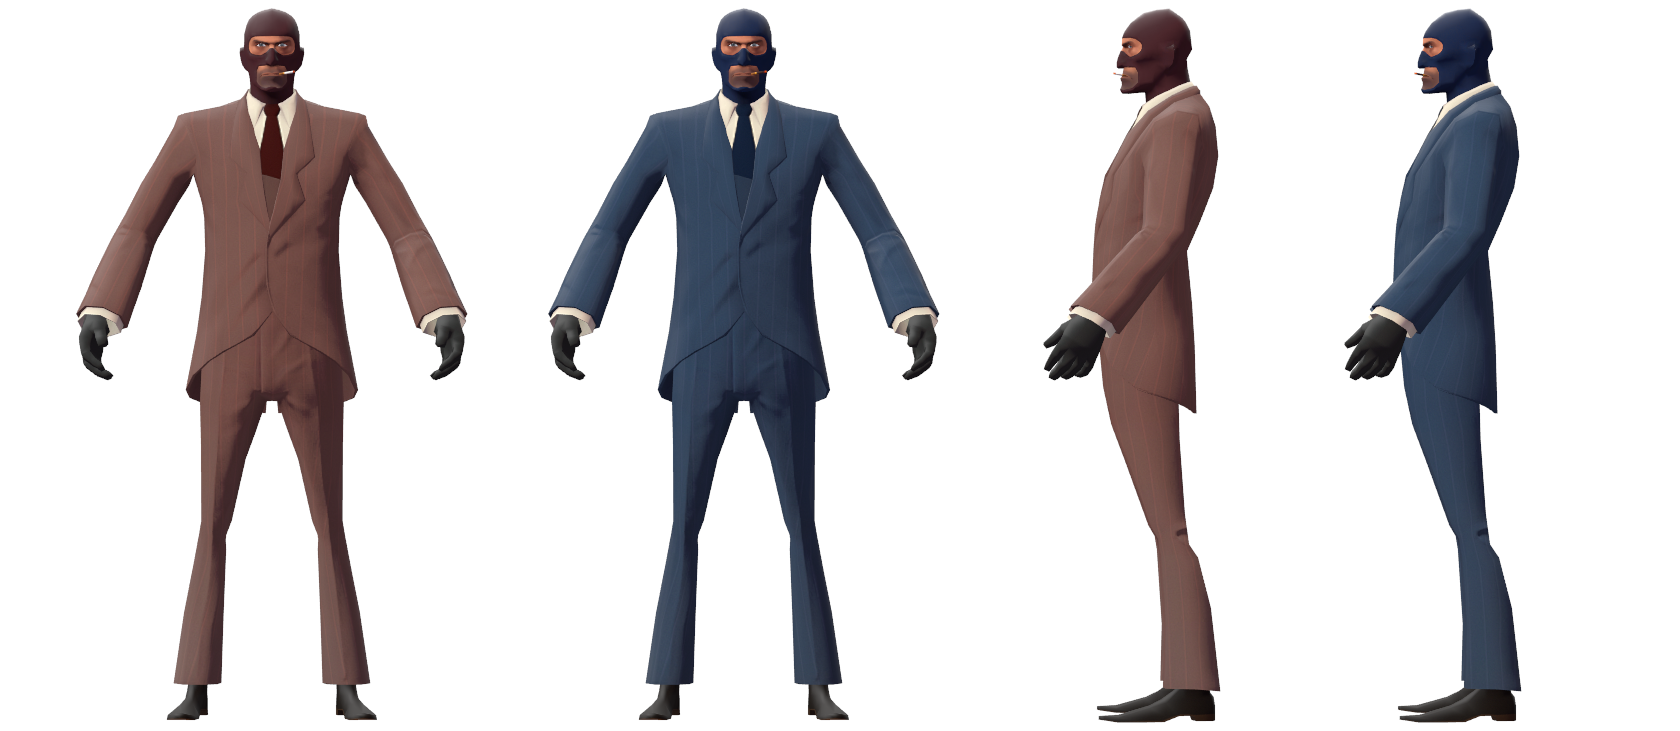 397828spy Png 1680 731 Team Fortress 2 Team Fortress Coat